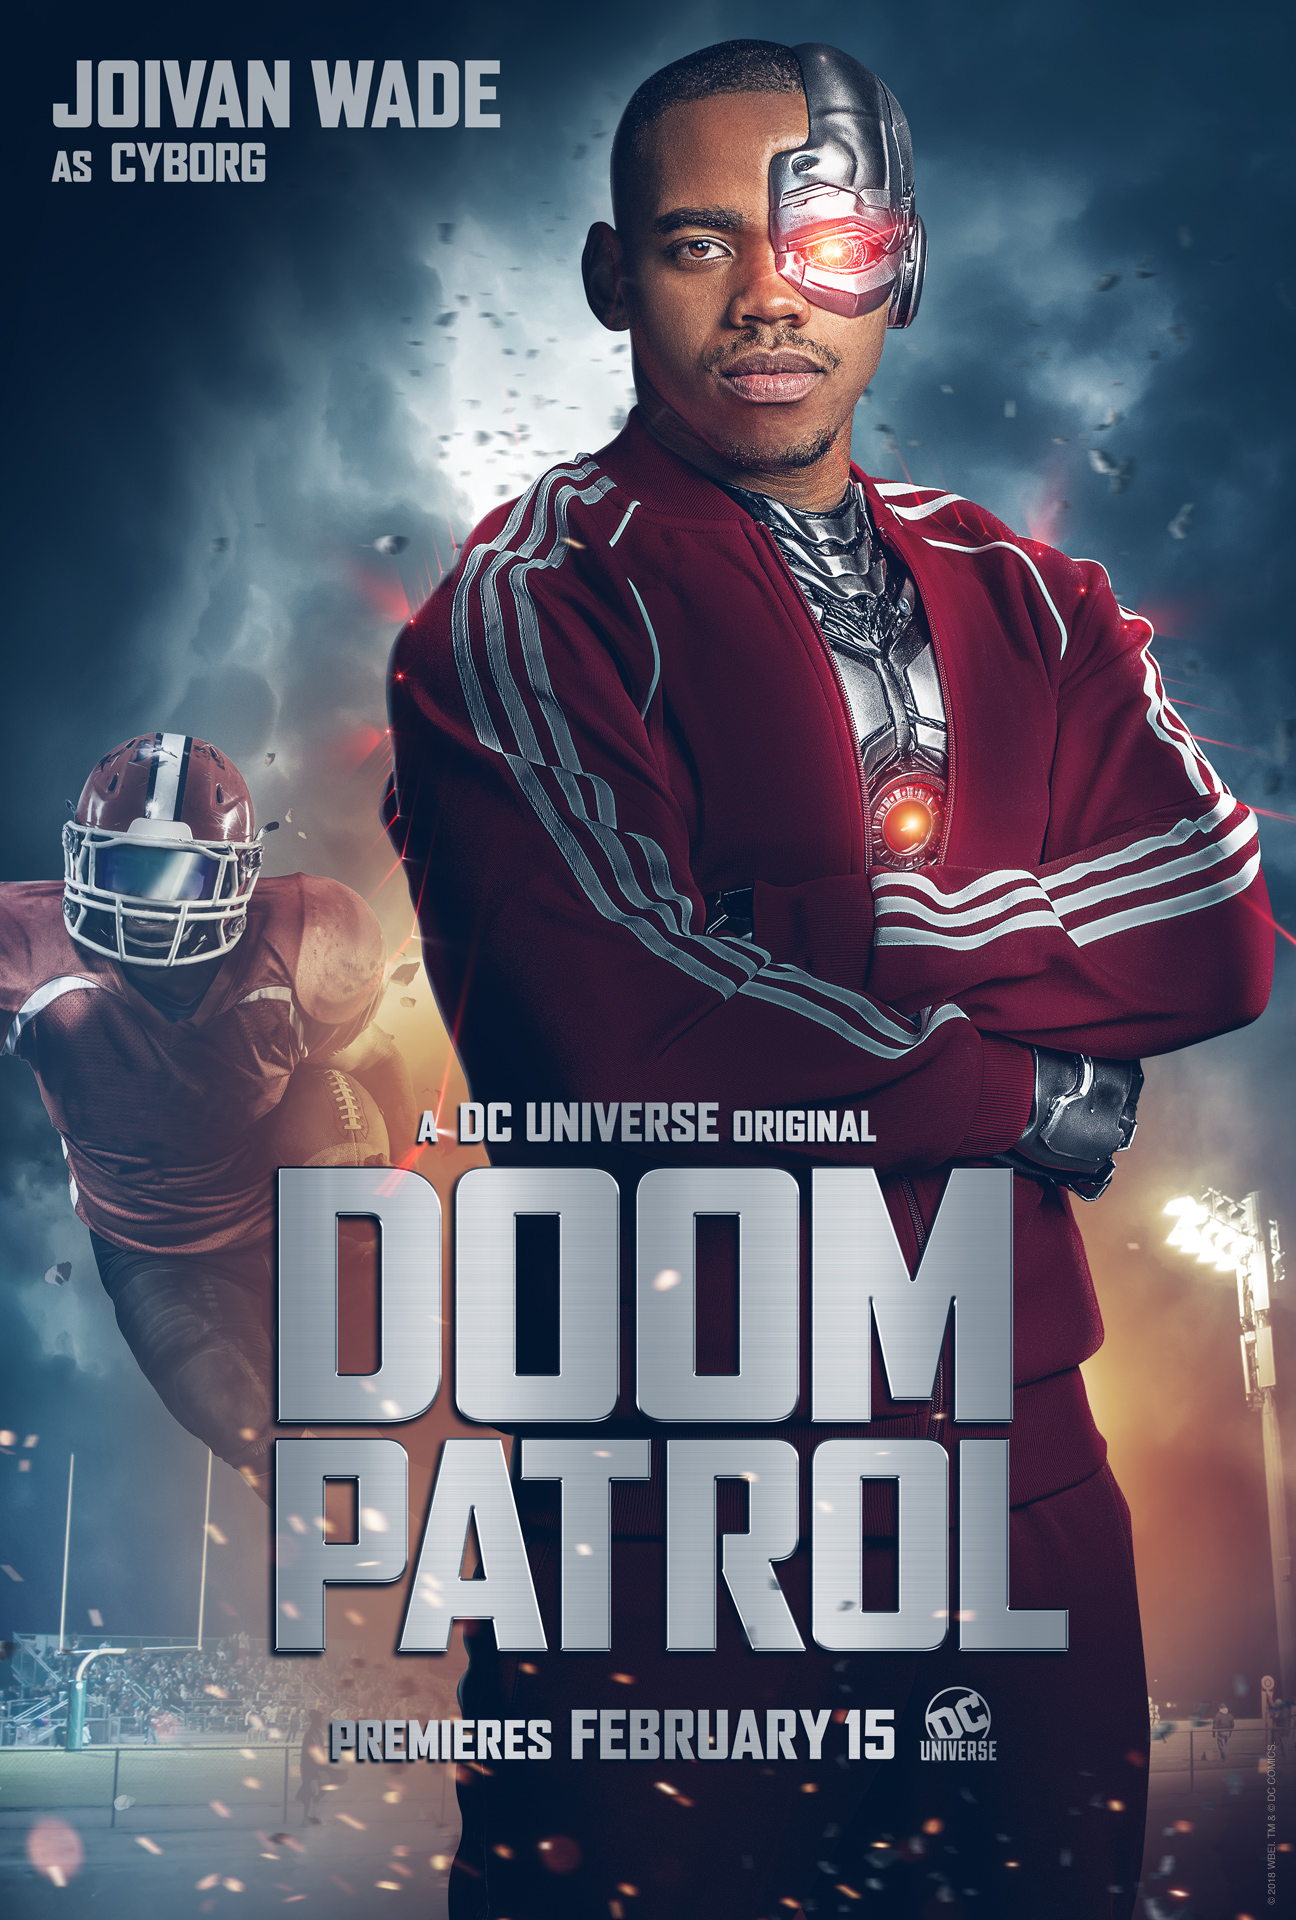 Behind The Scenes Photo Gives Us A New Look At Cyborg In Doom Patrol